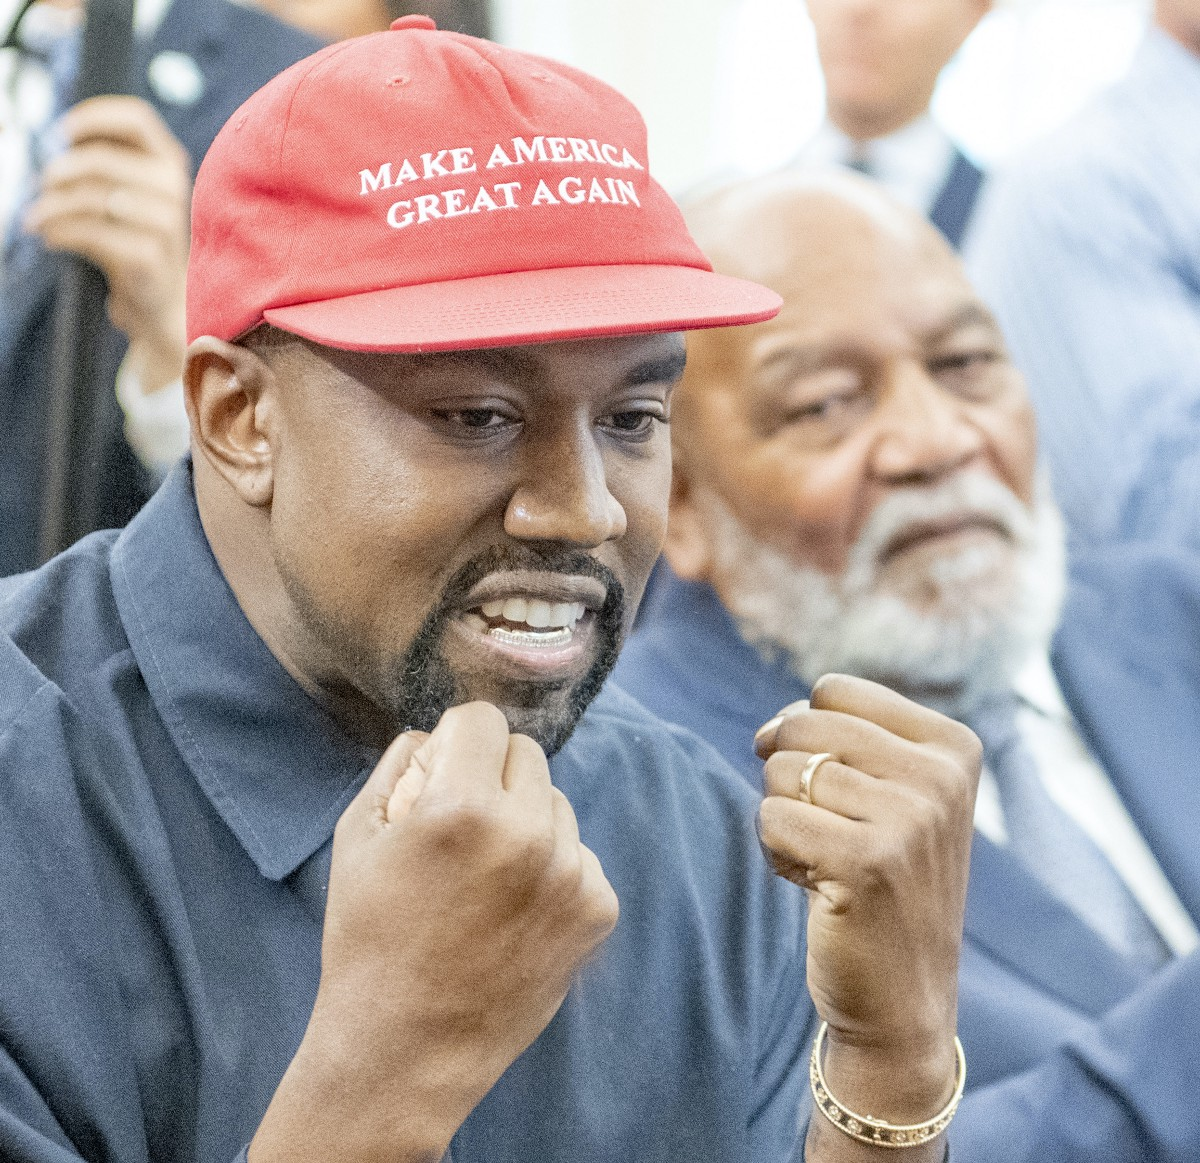 The One, Single, Solitary Lesson the DNC Can Learn from Kanye West